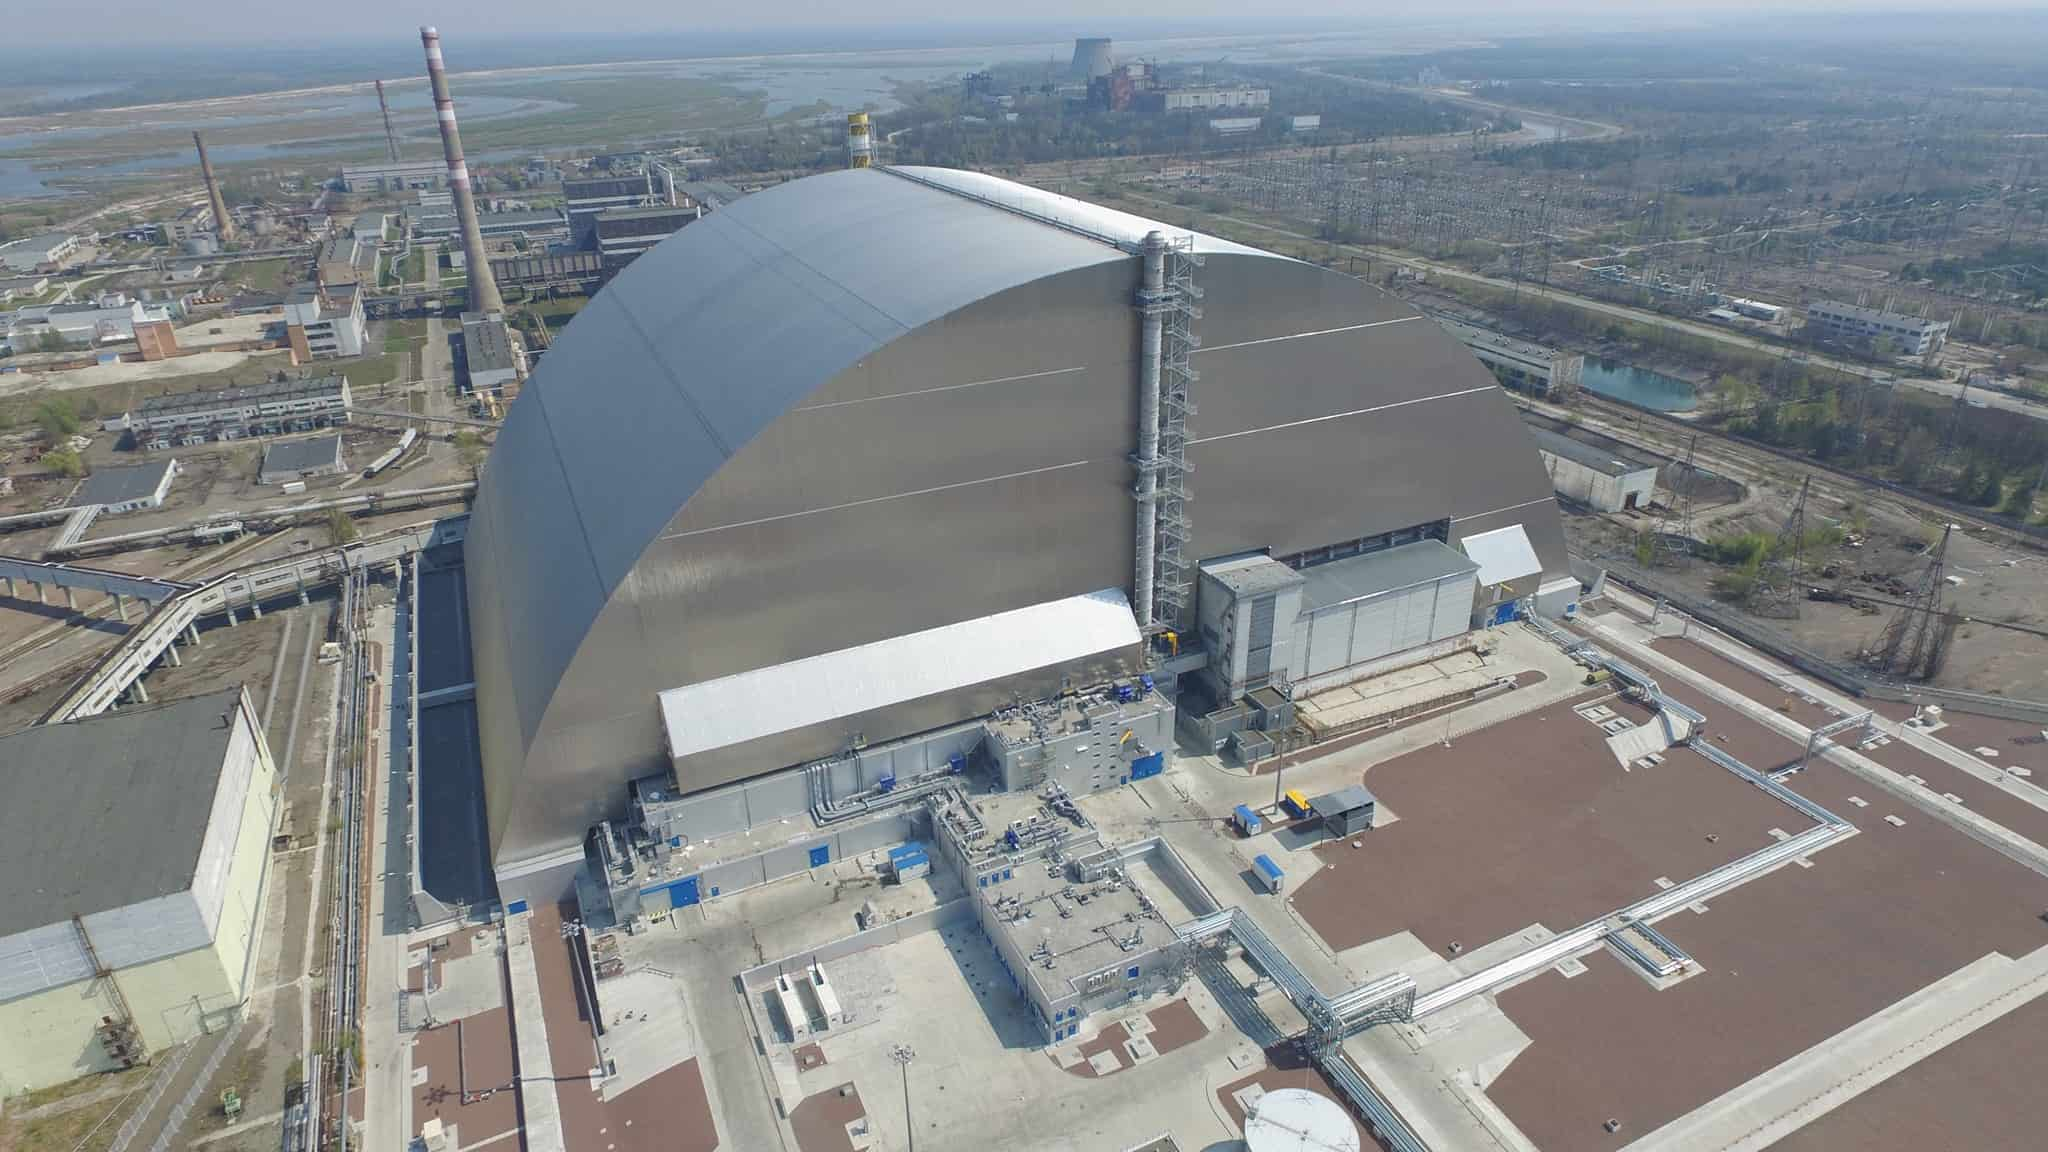 The arch over the fourth power unit of the Chernobyl NPP was commissioned